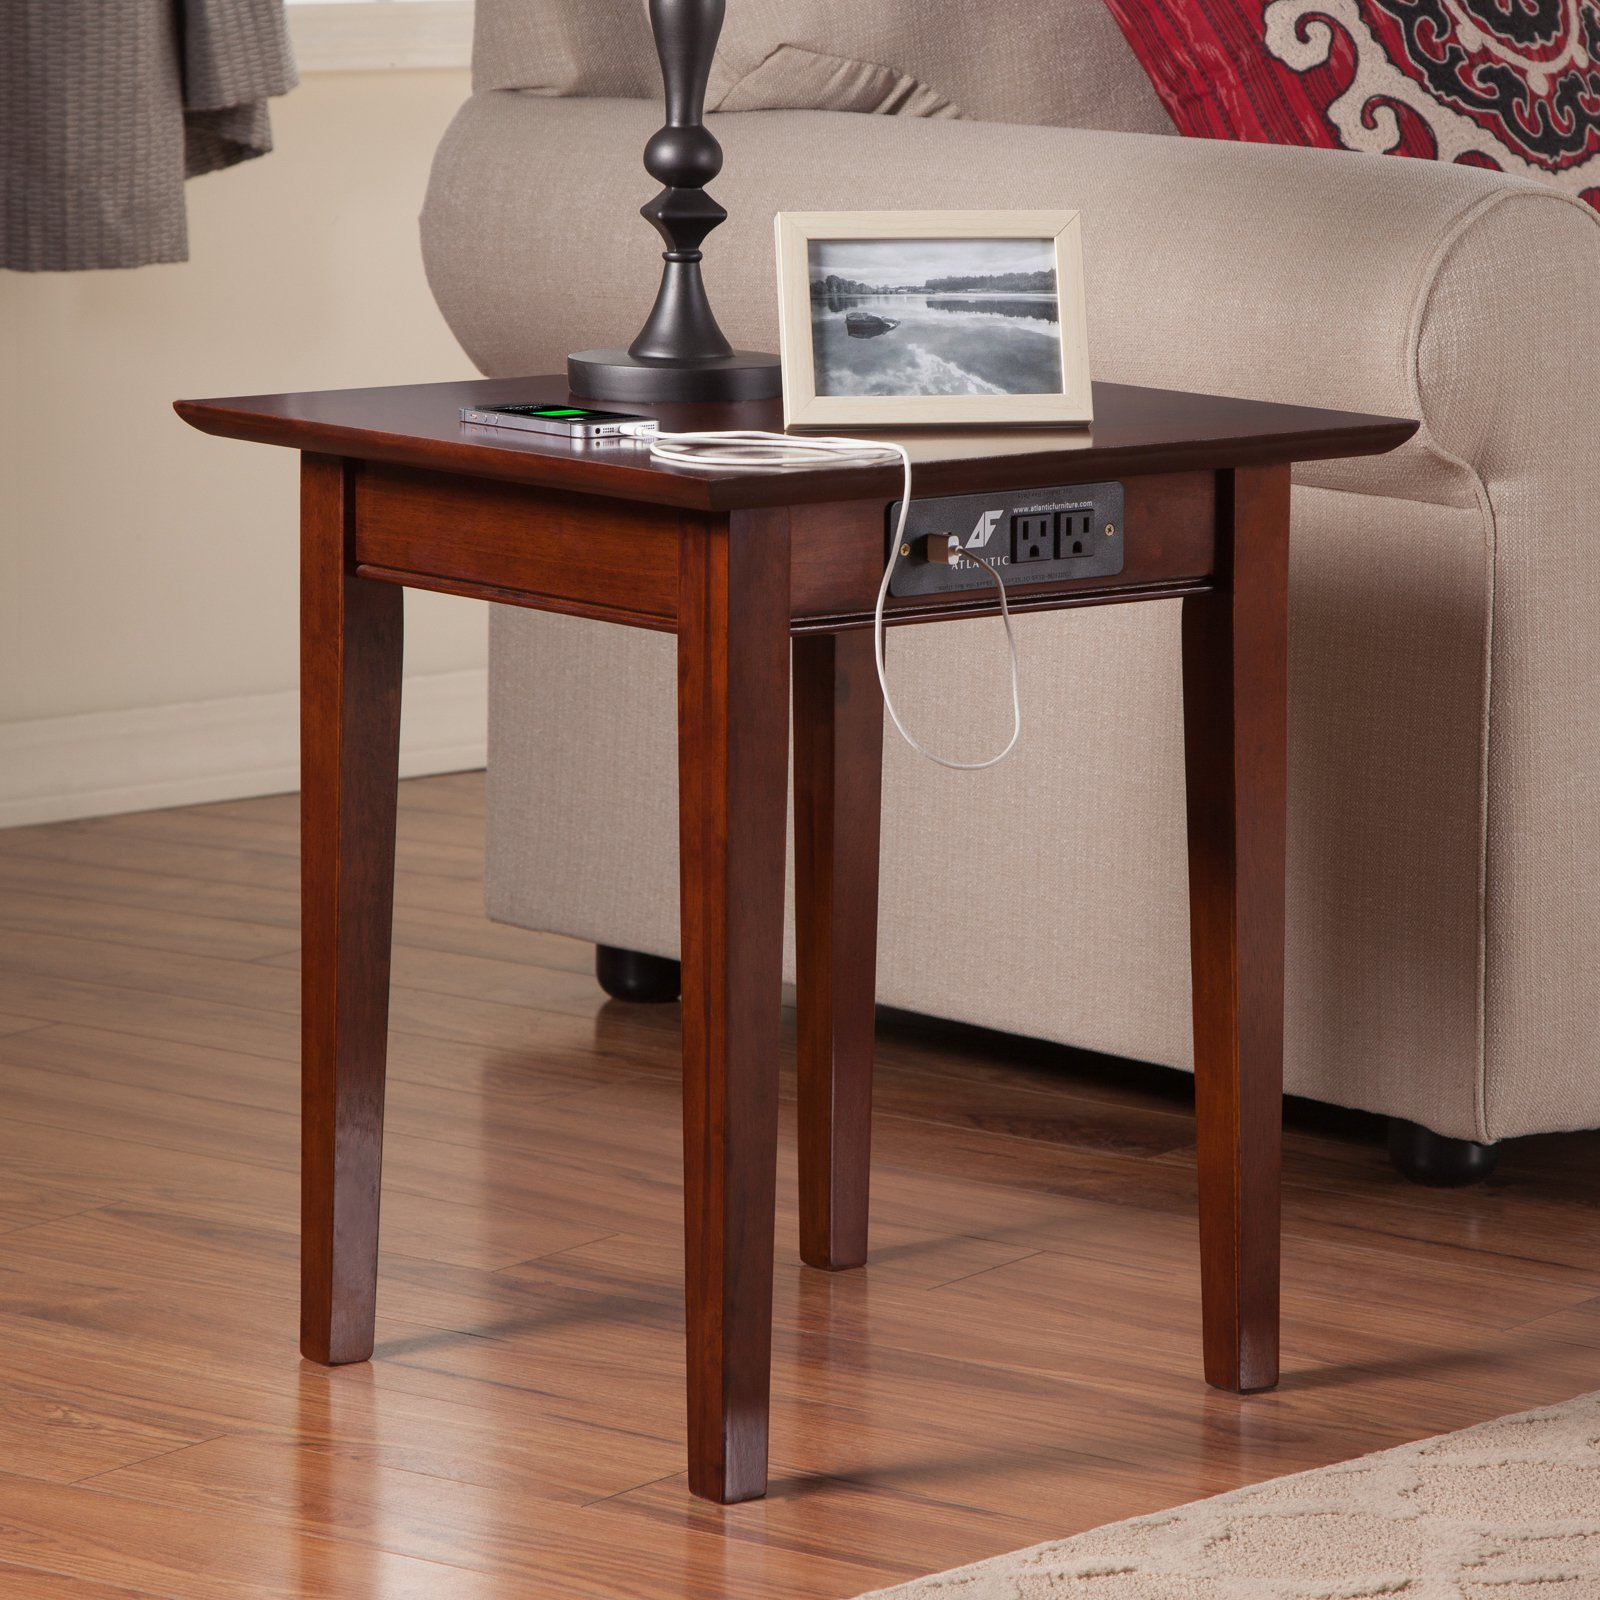 Merveilleux Atlantic Furniture Vienna End Table With Charging Station   Walmart.com